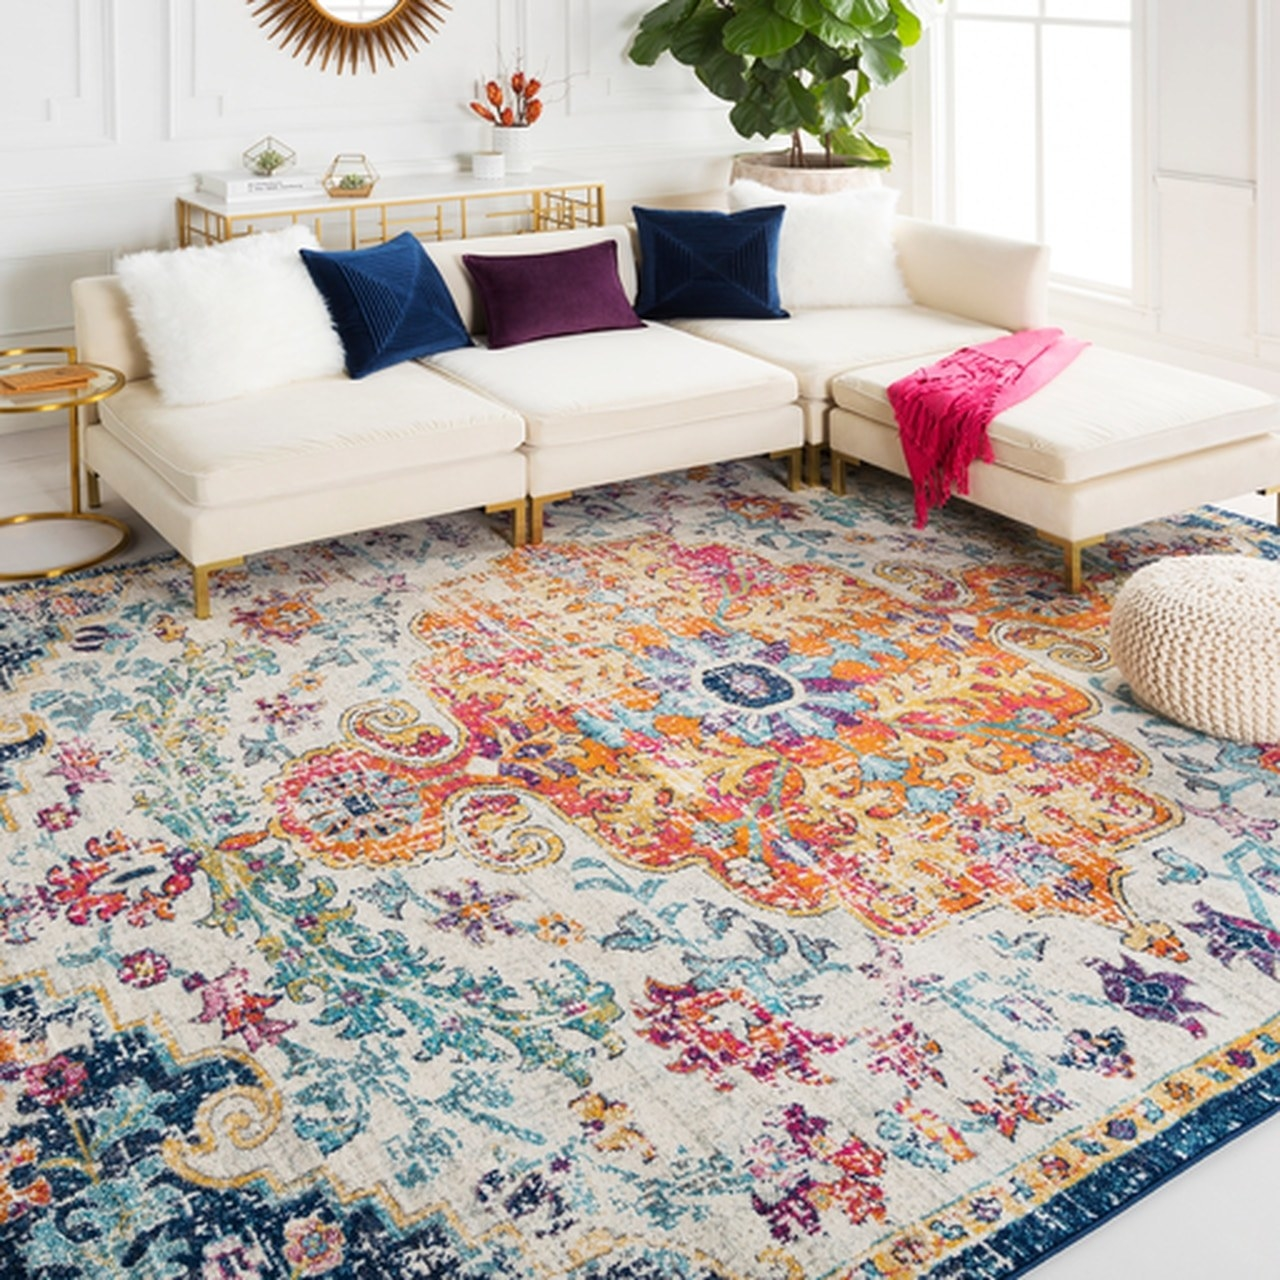 the colorful area rug in a living room